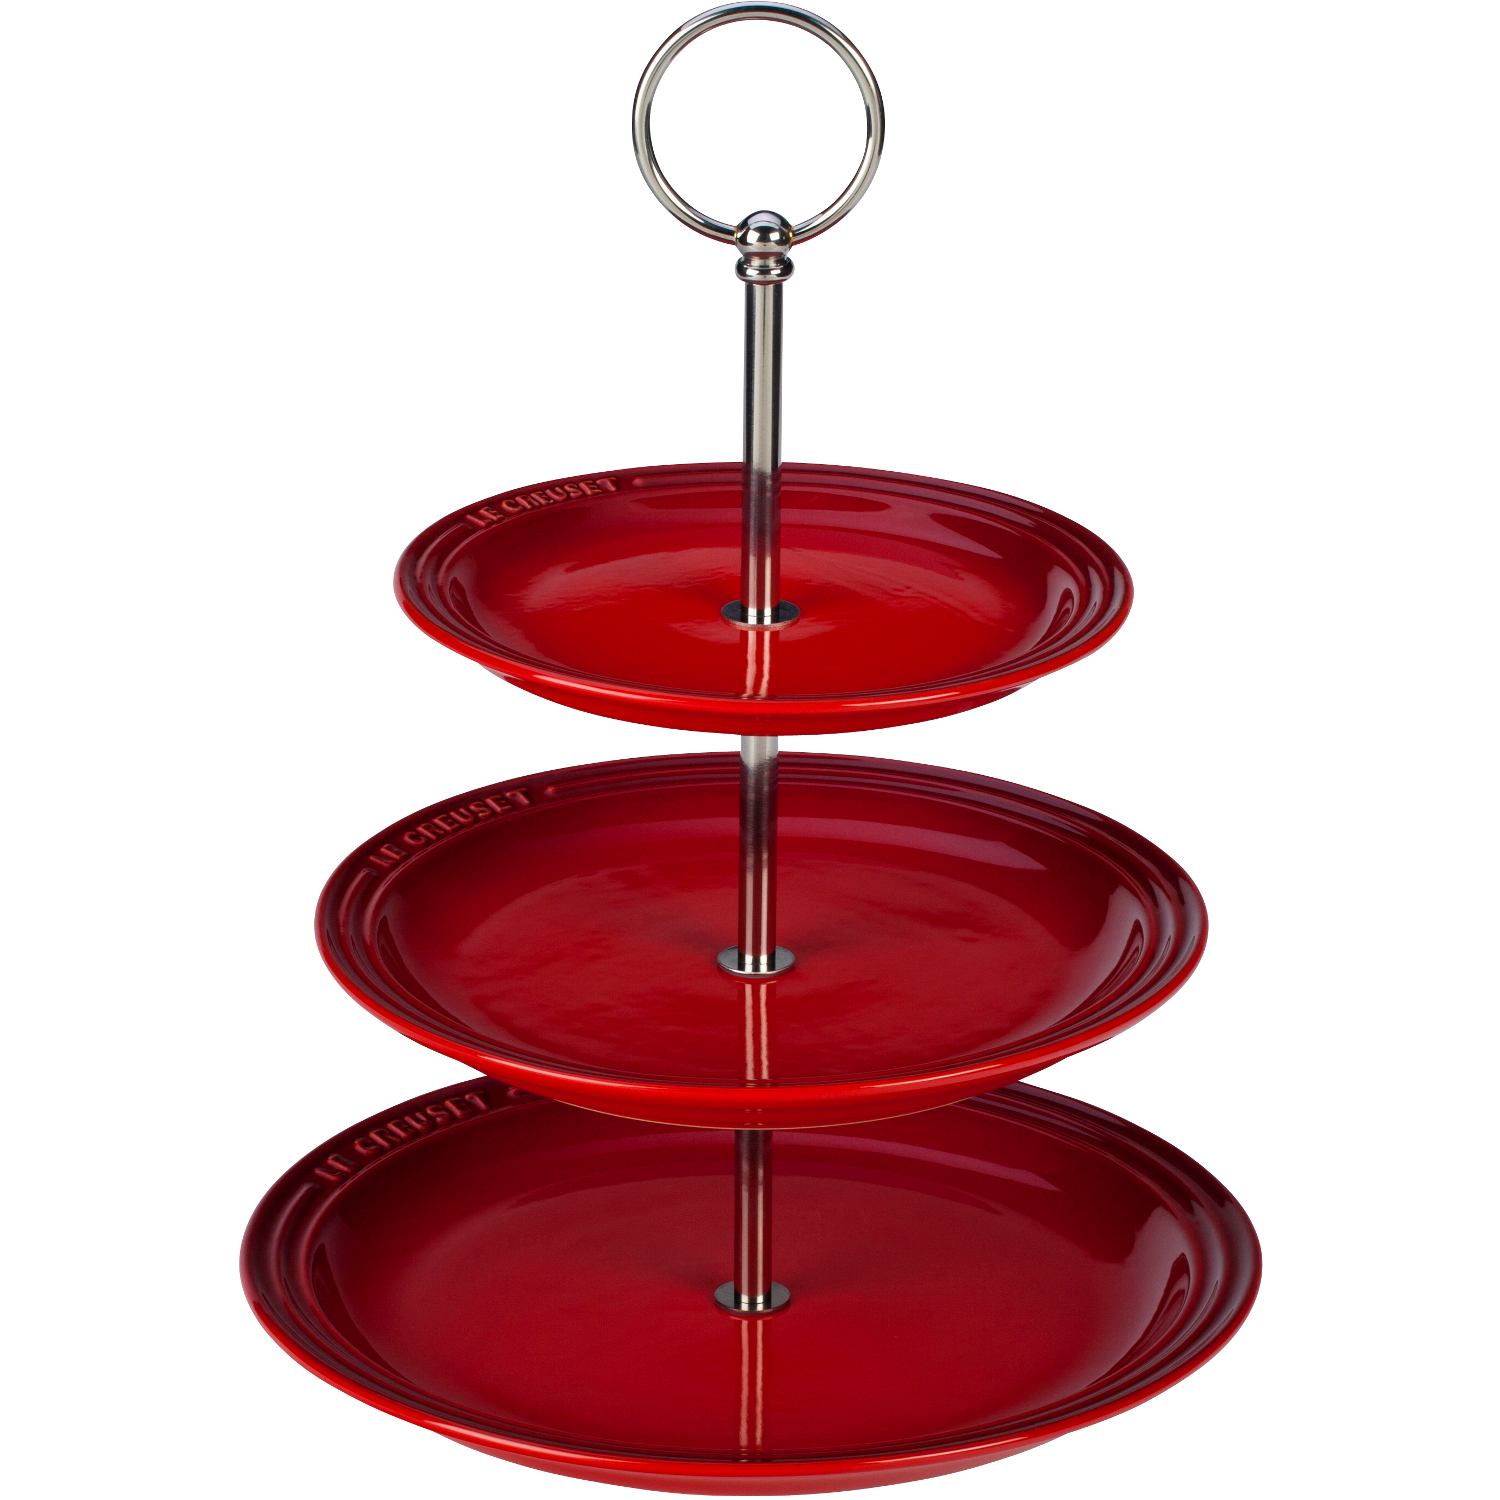 Le Creuset Cherry Stoneware 3 Tiered Server, 14.5 Inch